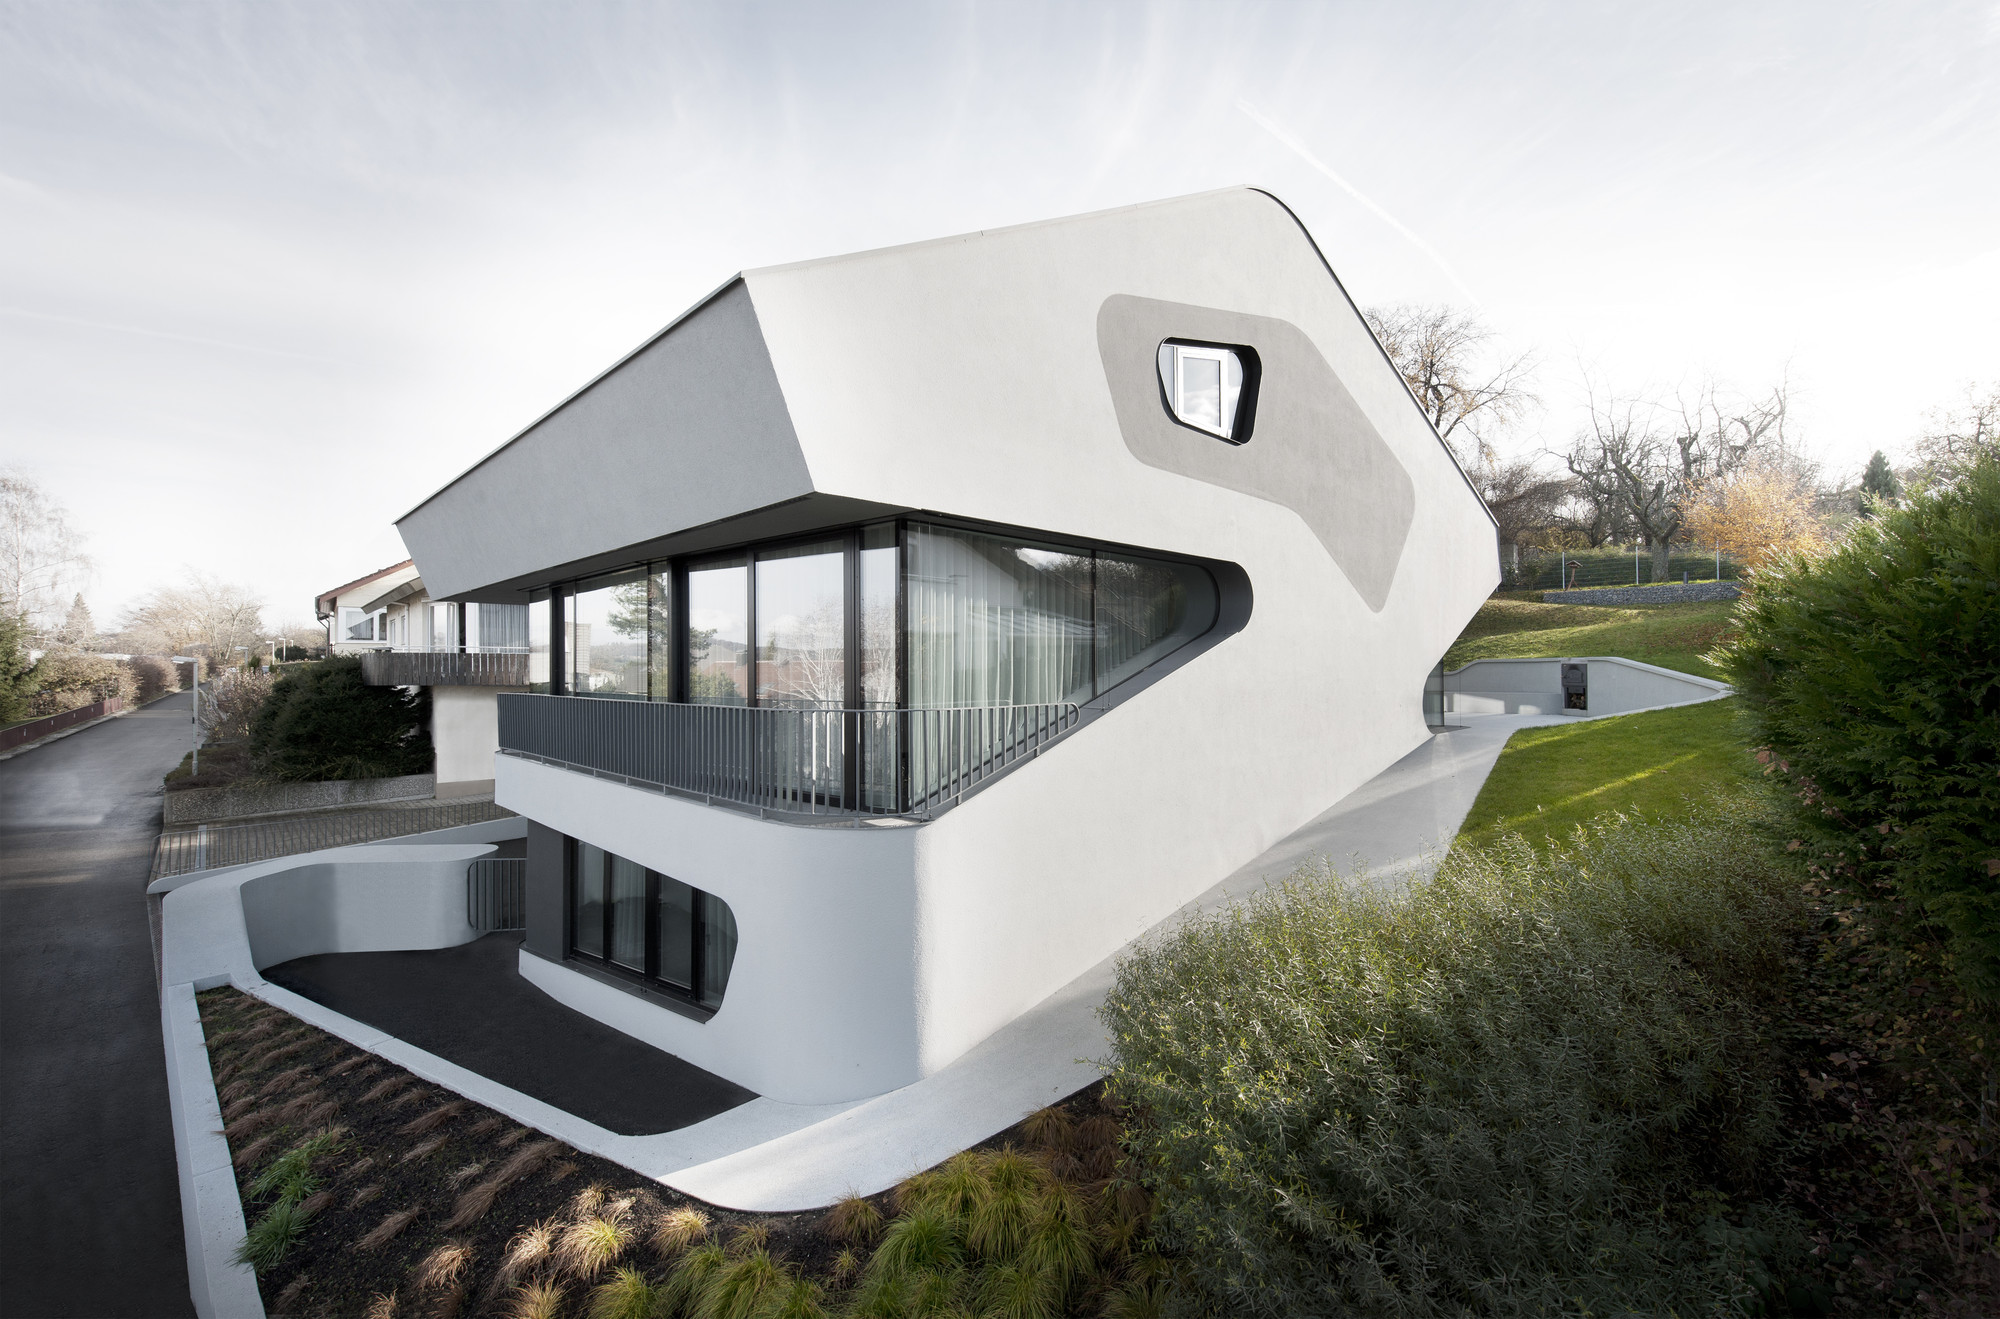 Ols house j mayer h architects archdaily for Futuristic home designs